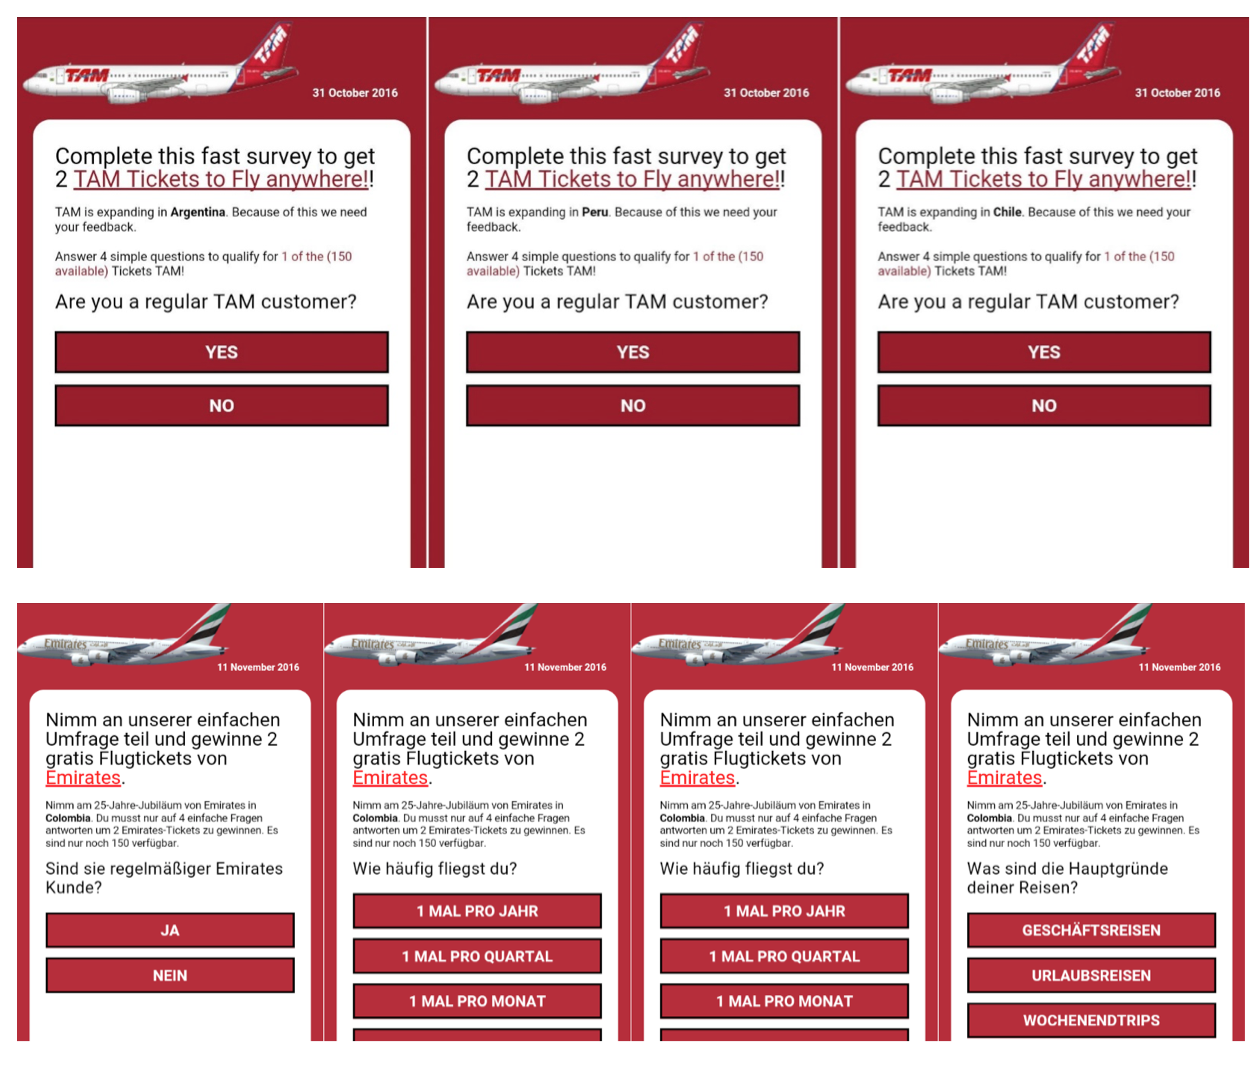 Screen Shot 2016-11-16 at 15.23.37  - Screen Shot 2016 11 16 at 15 - New airline scam promises free Emirates flight tickets